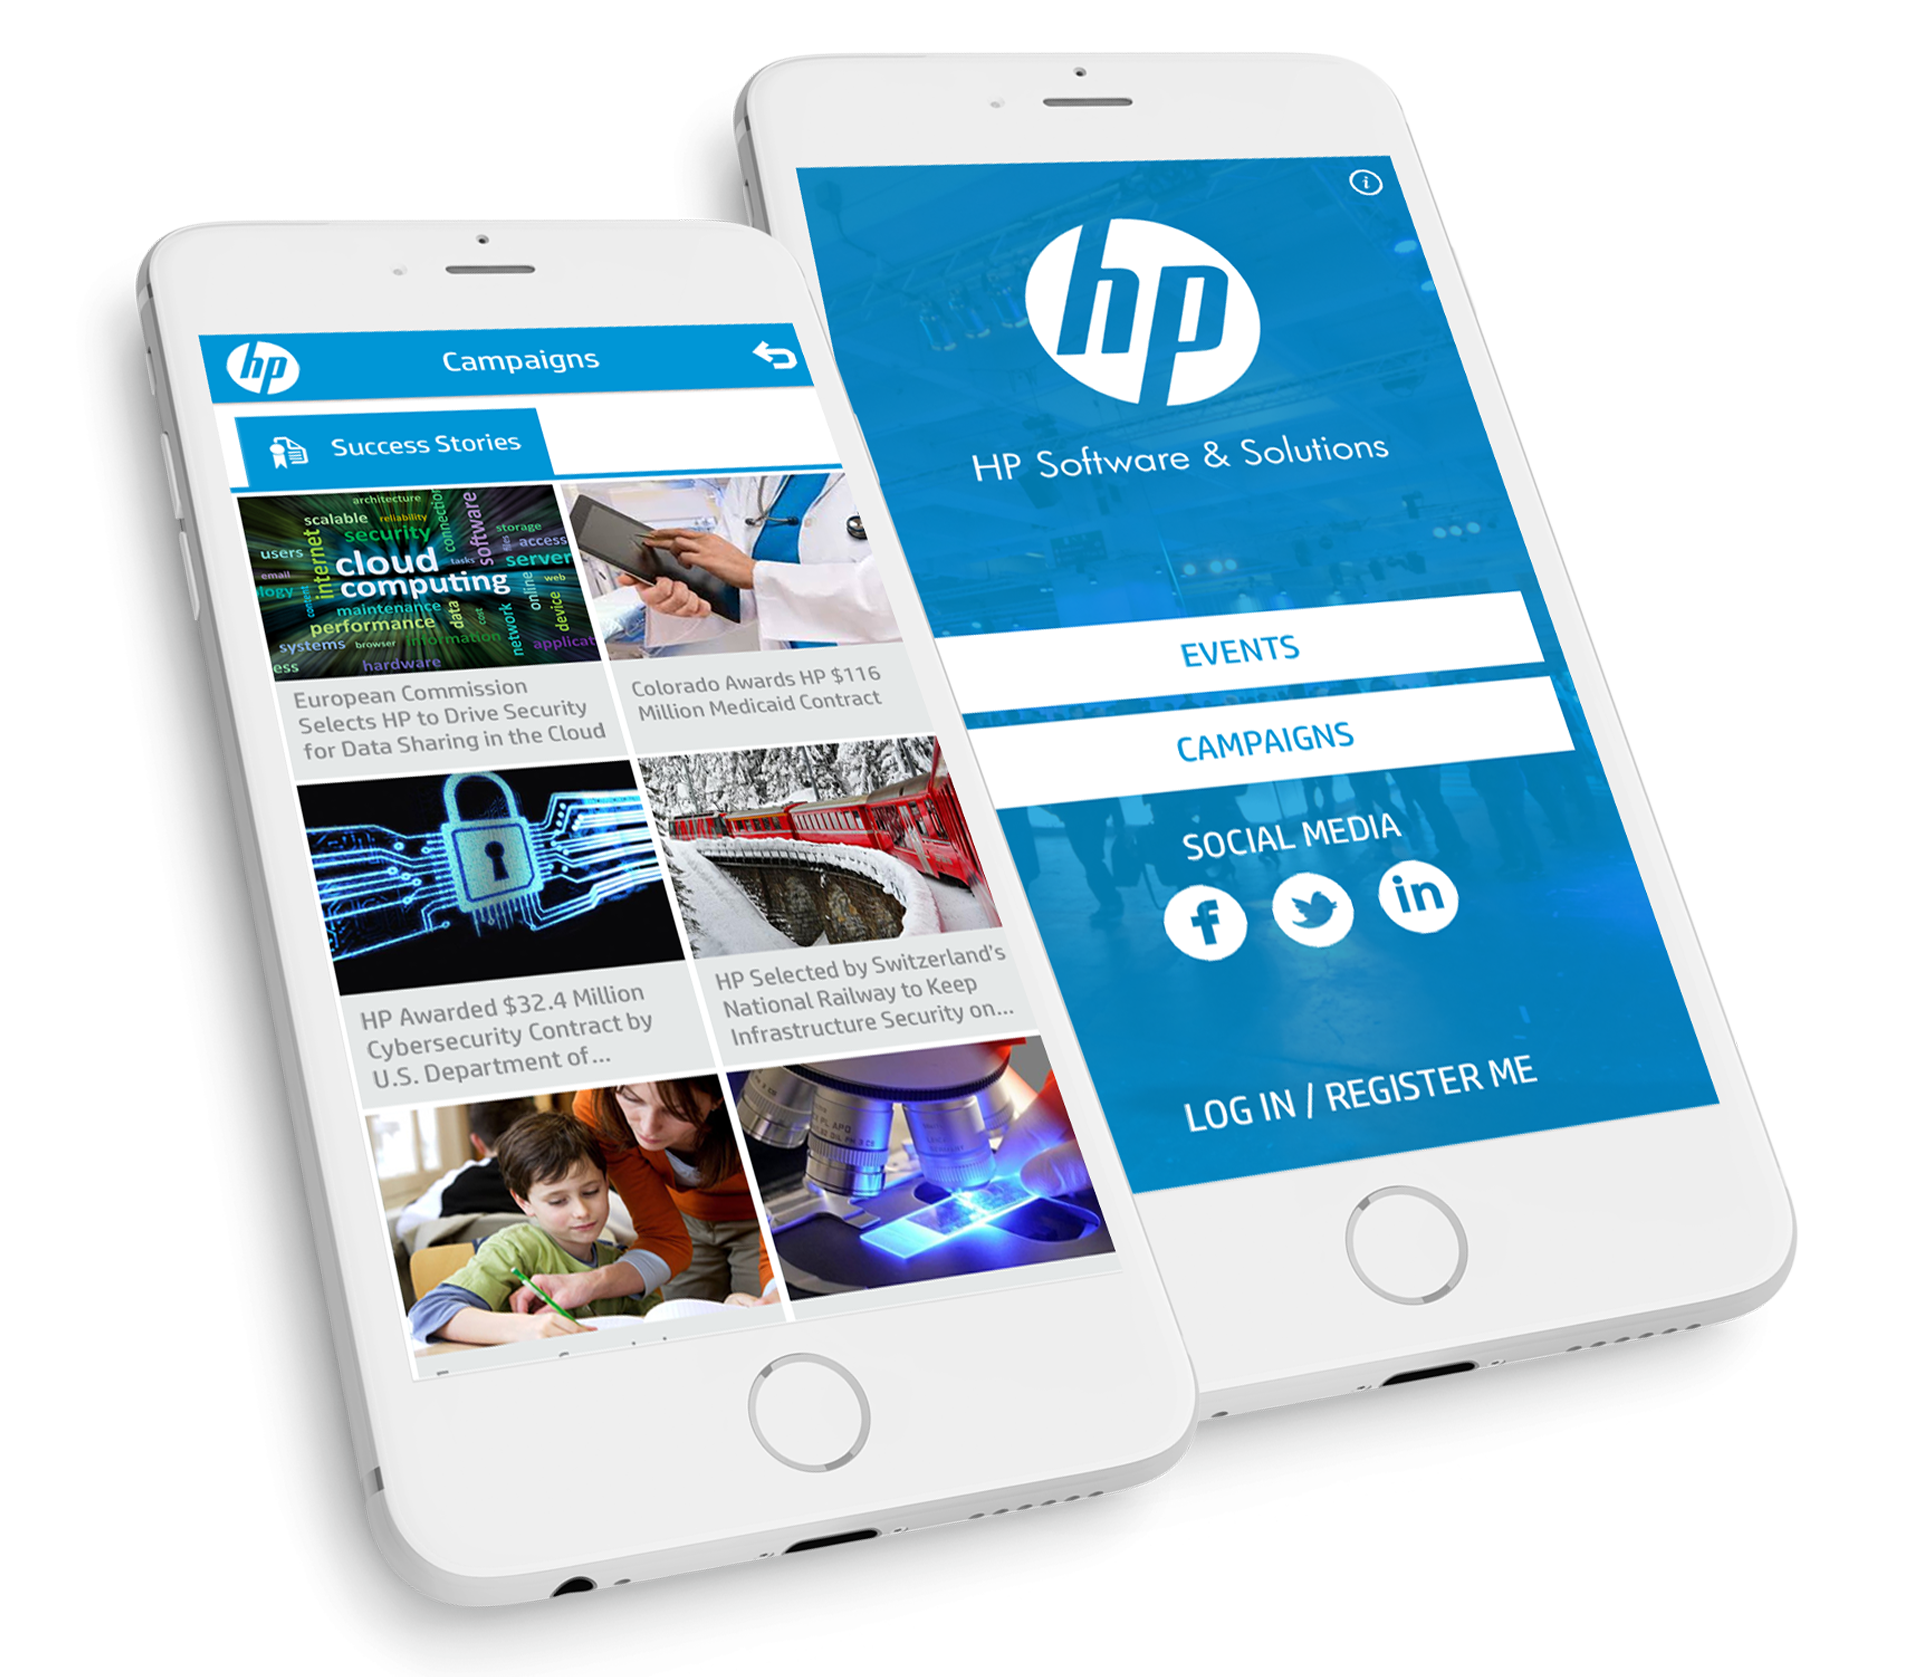 HP Event UAE App